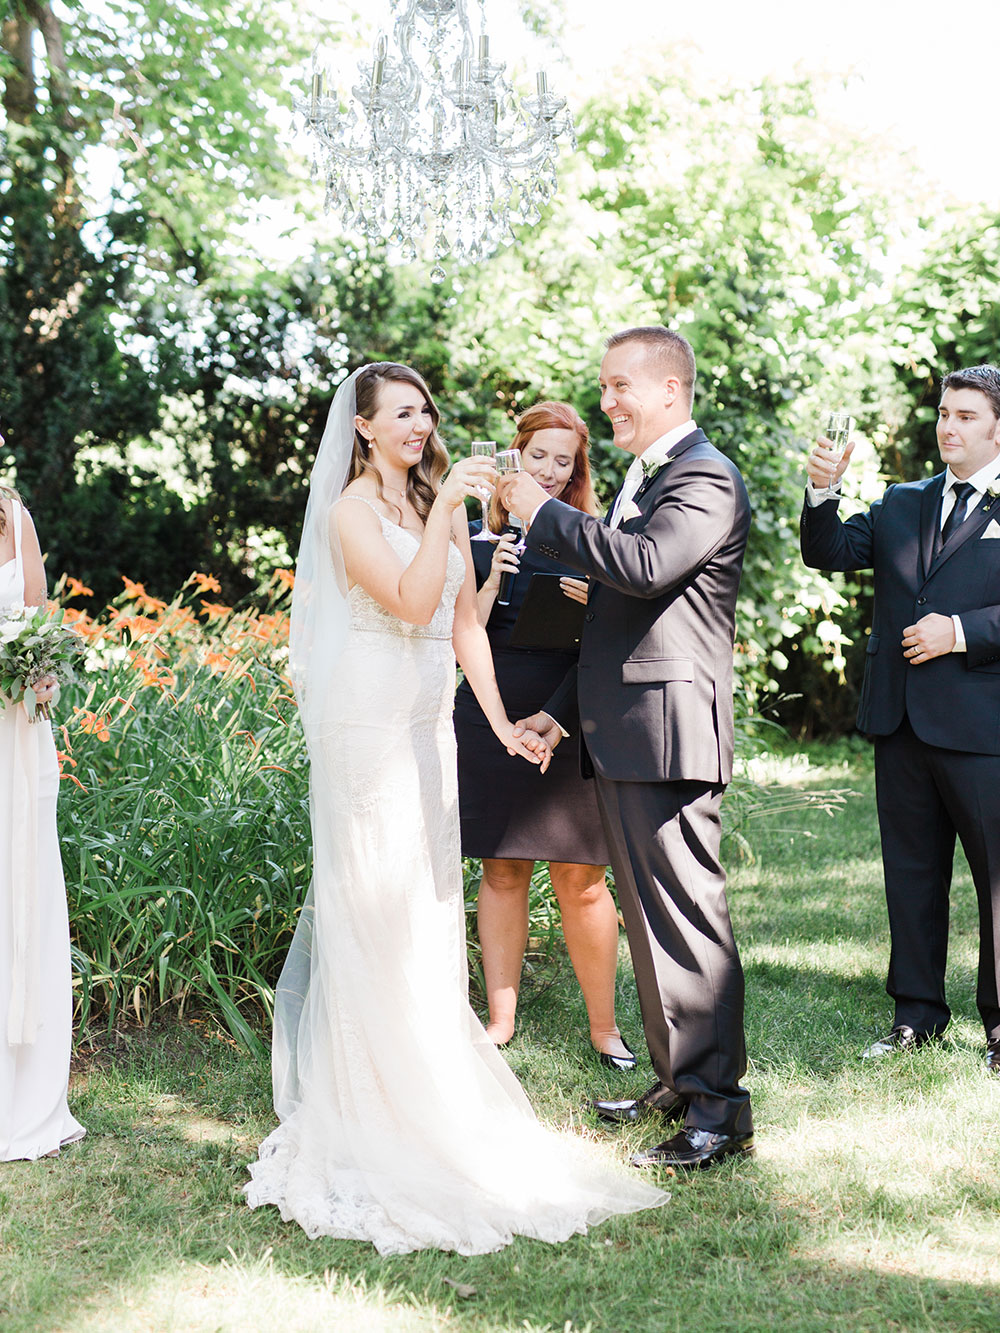 kurtz-orchards-wedding-gracewood-estate-niagara-on-the-lake-photo-by-katie-nicolle-photography-0031.JPG